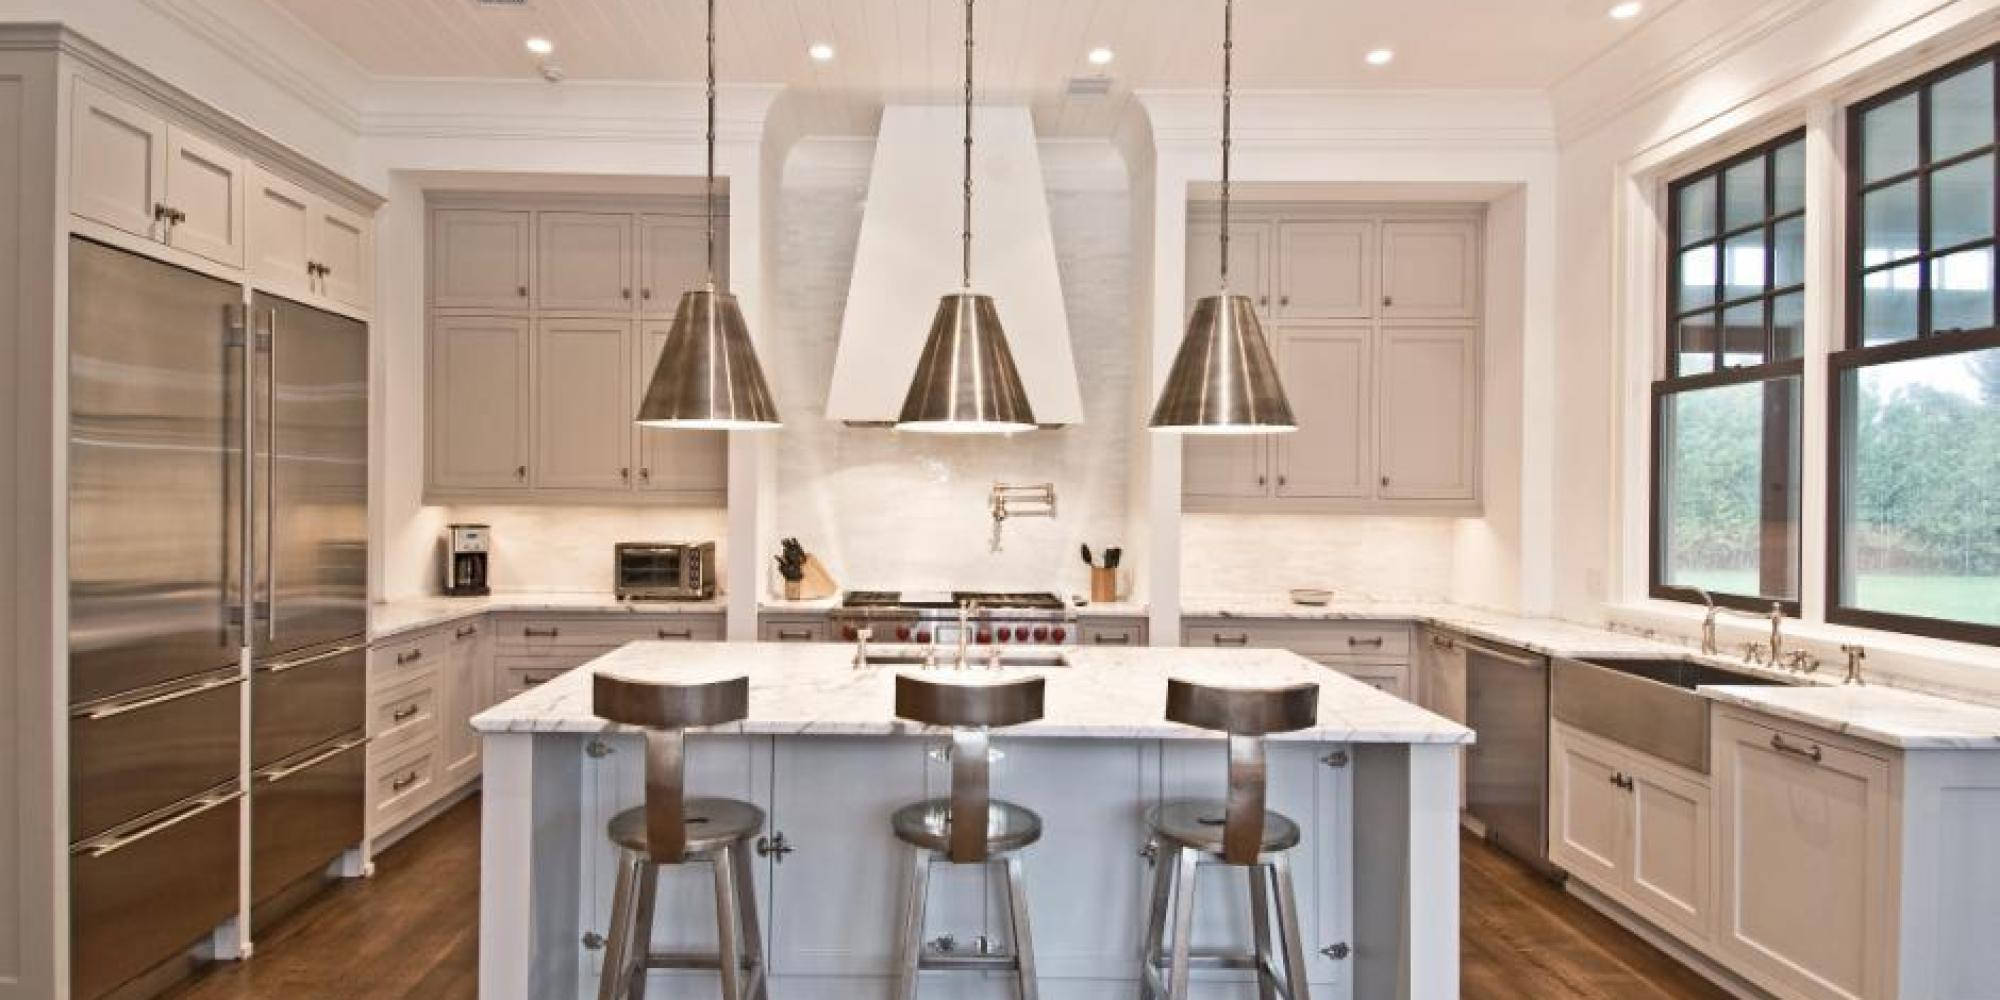 For Kitchen Colours The Best Paint Colors For Every Type Of Kitchen Huffpost